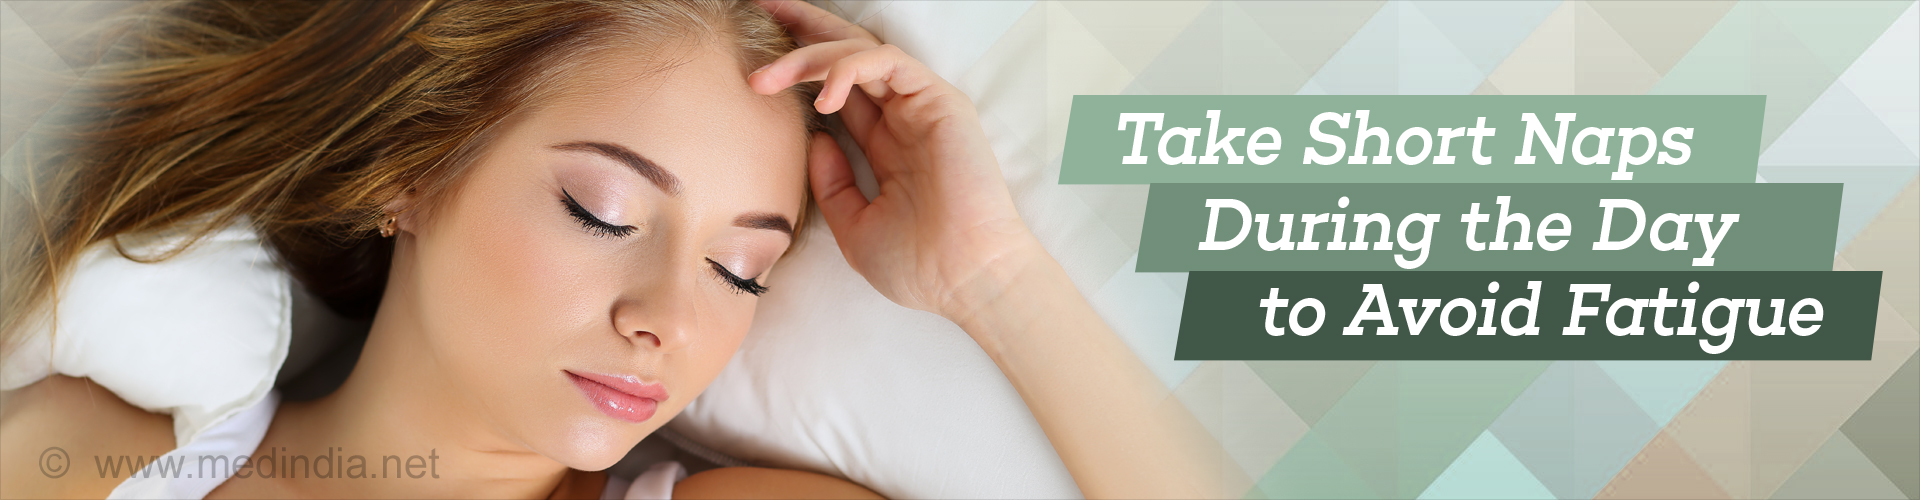 Home Remedies for Fatigue